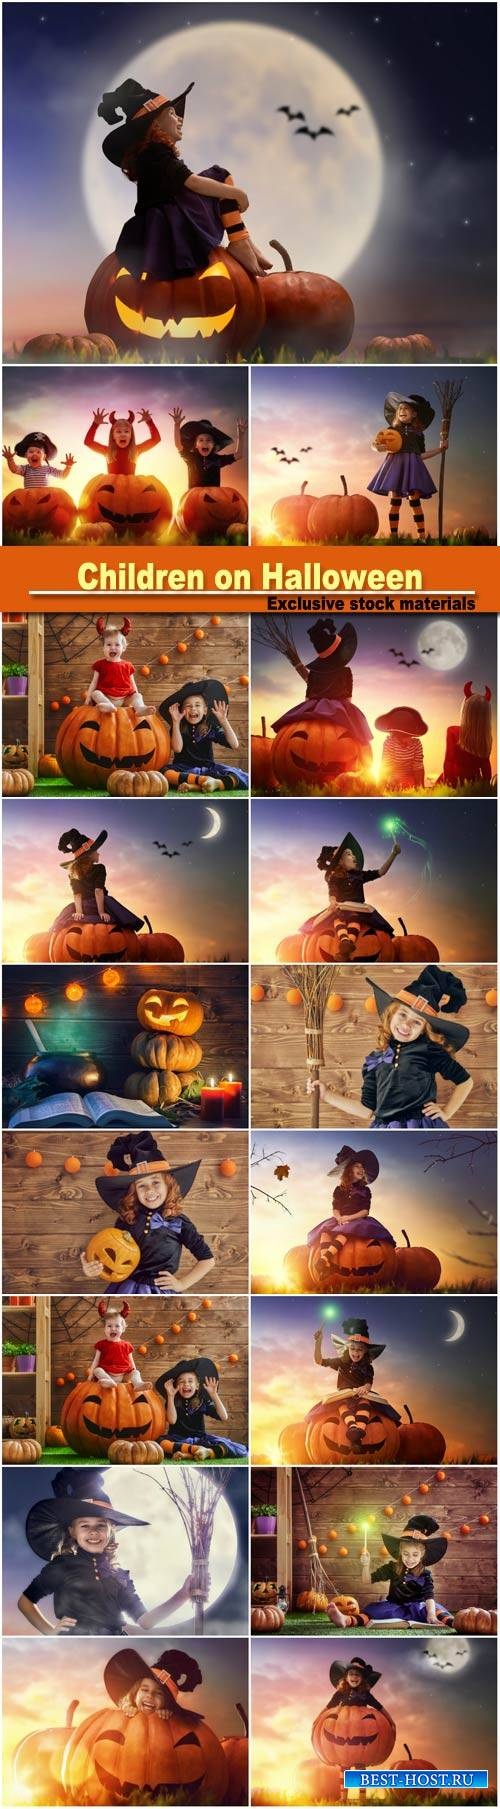 Children and pumpkins on Halloween